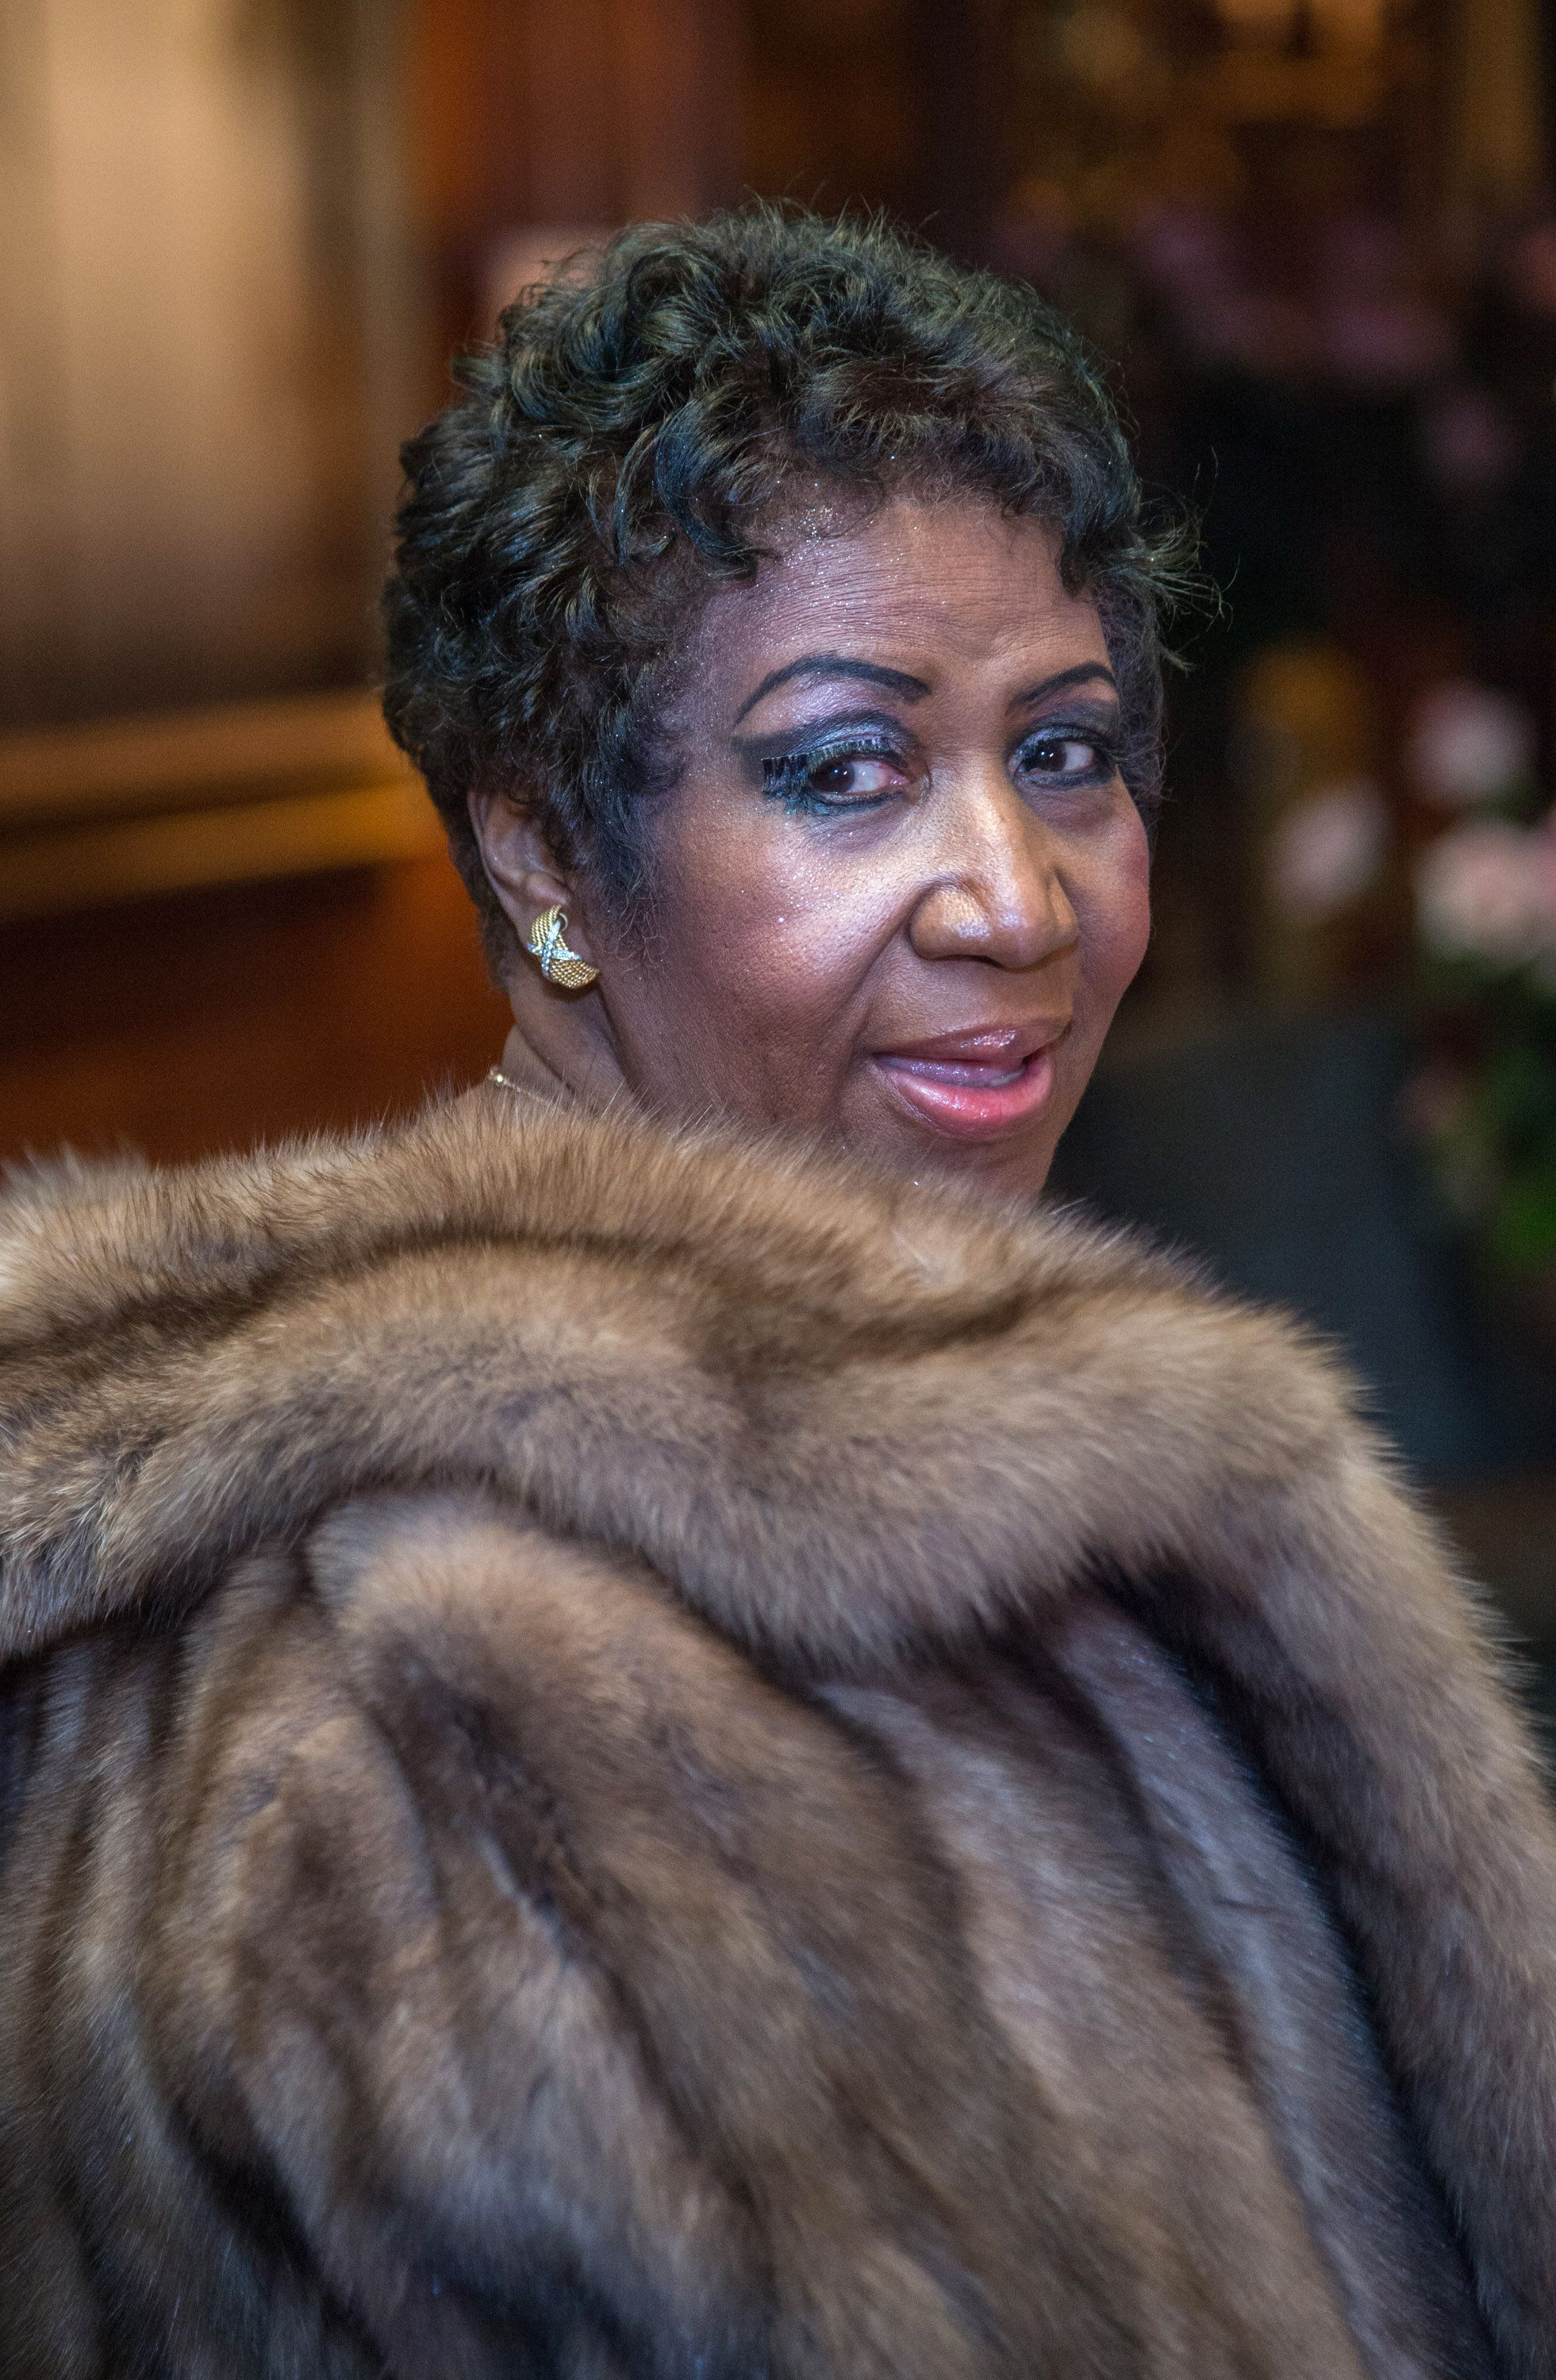 NEW YORK, NY - MARCH 22:  Singer Aretha Franklin attends the Aretha Franklin Birthday Celebration at the Ritz Carlton Hotel on March 22, 2015 in New York City.  (Photo by Mark Sagliocco/FilmMagic)